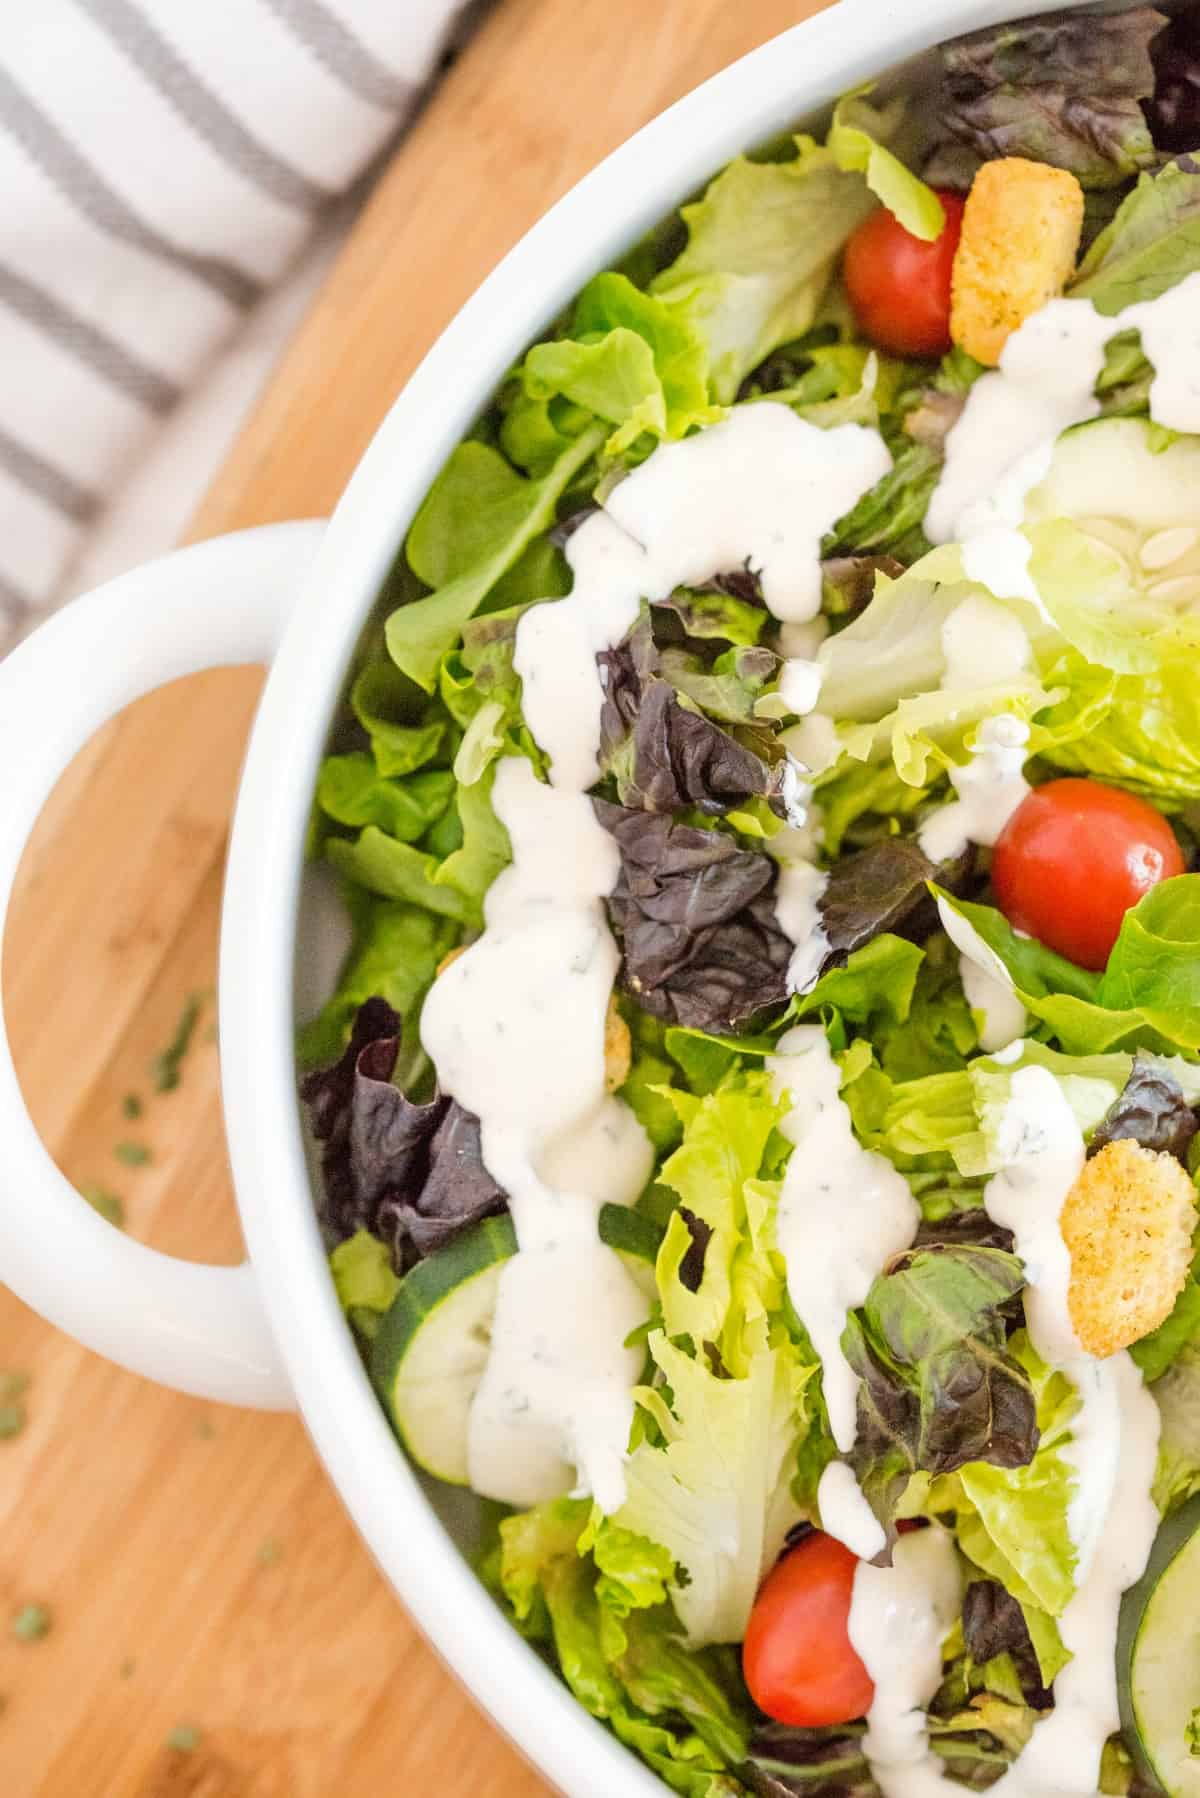 Leafy green salad in a white bowl topped with cherry tomatoes, croutons, and homemade ranch dressing.